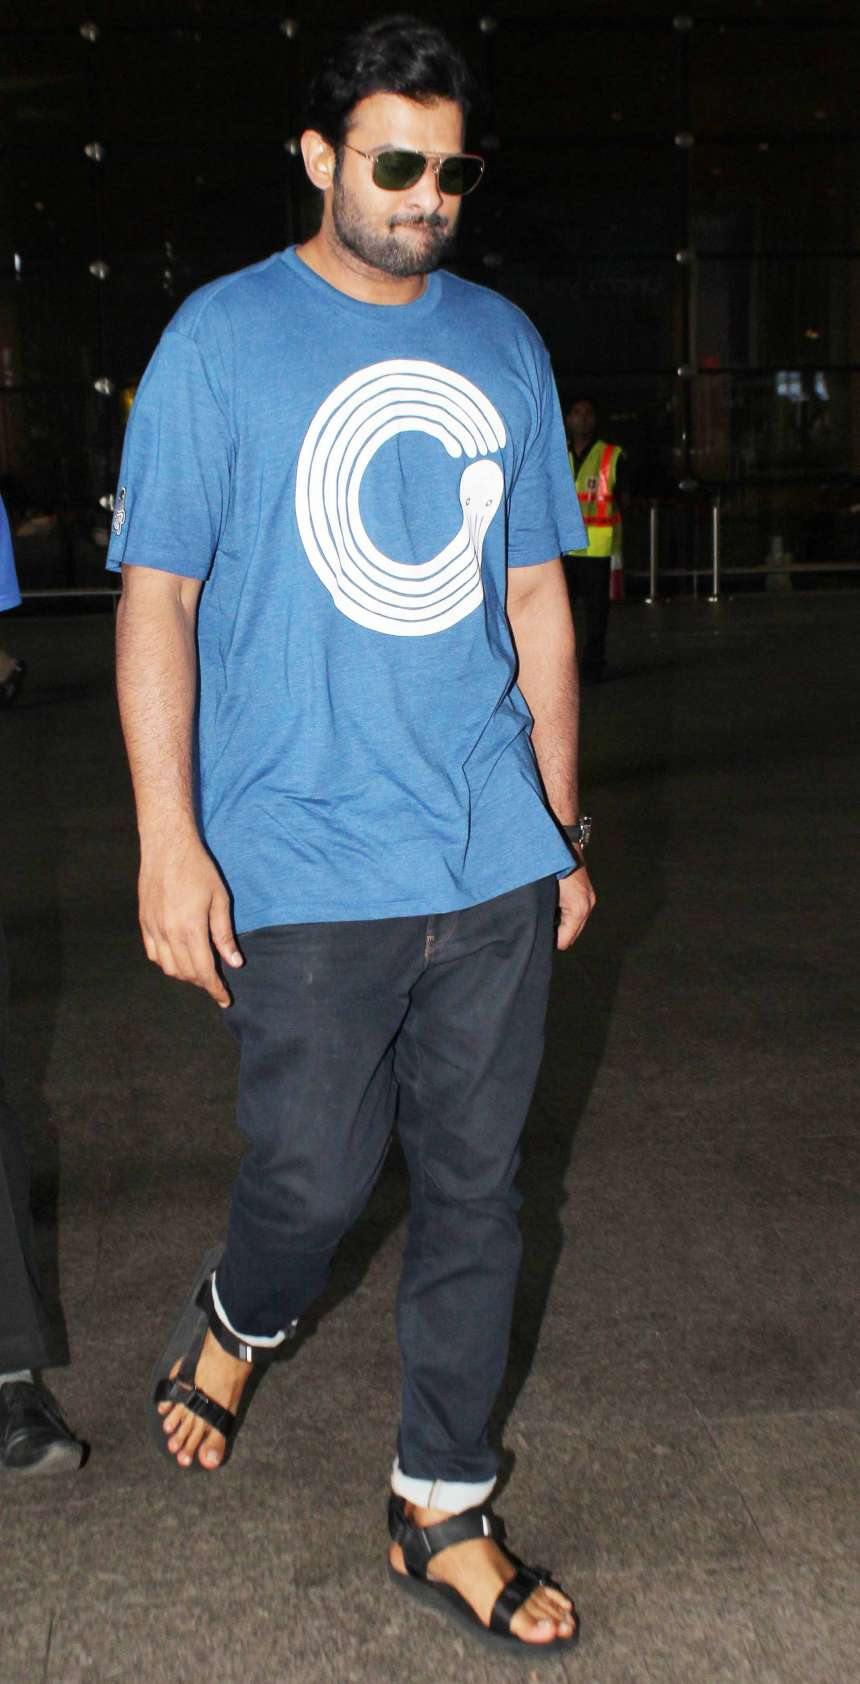 Prabhas: Bahubali star Prabhas was seen in a casual look wearing a basic graphic tee and blue denim along with black kittos at an airport.